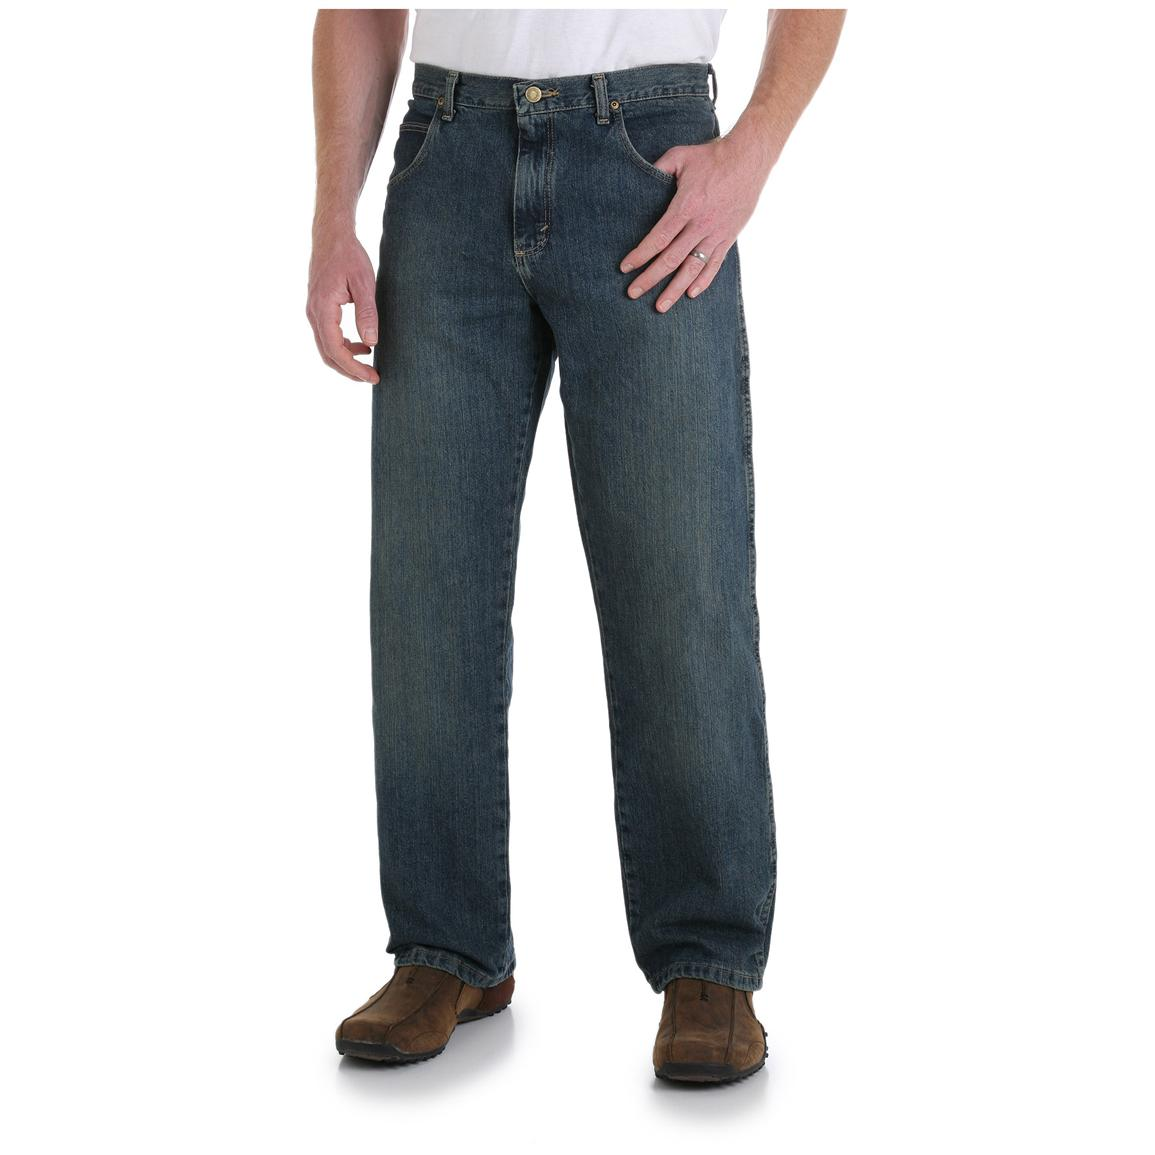 Men's Wrangler® Rugged Wear Relaxed Straight Fit Jeans, Mediterranean